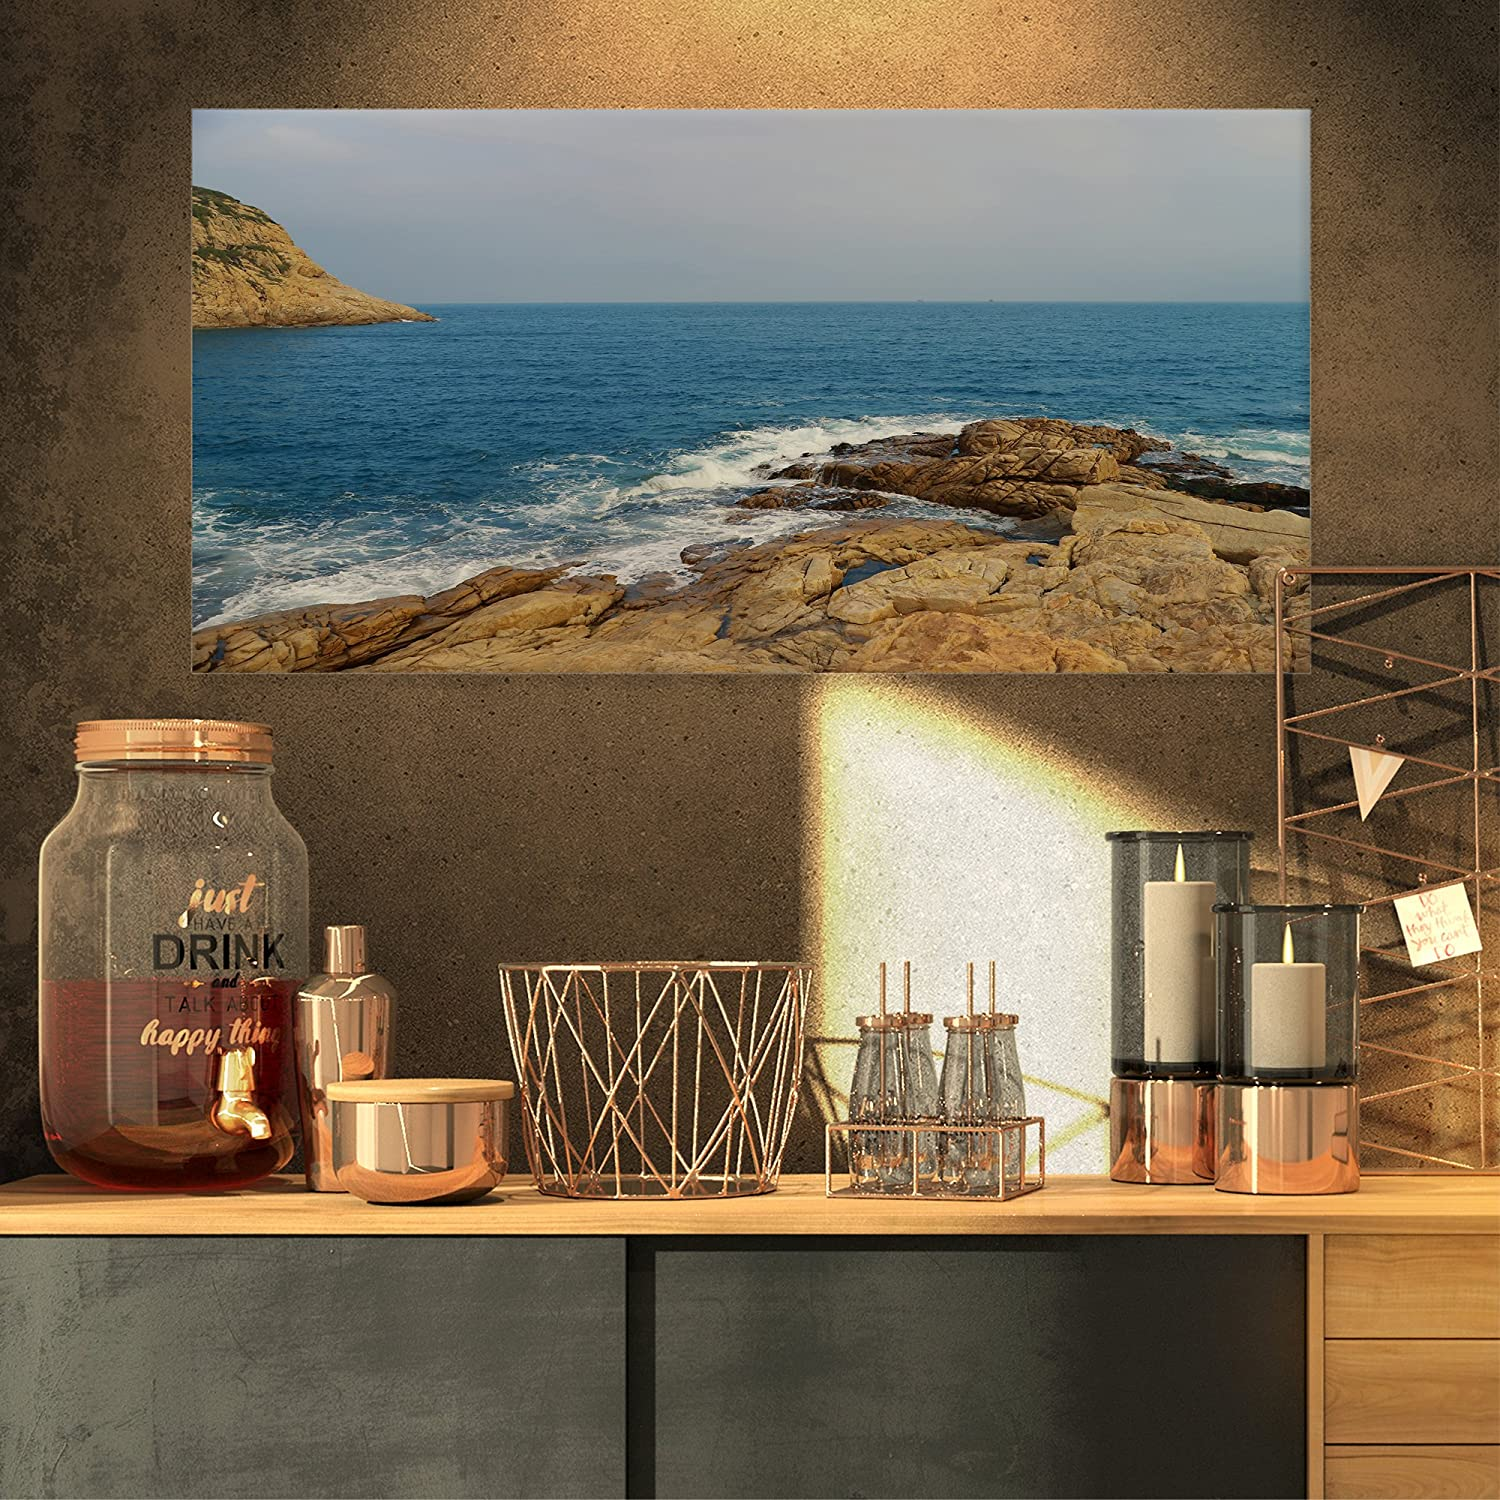 Blurred Waters In Hong Kong Beach Extra Large Seashore Canvas Art Amazon In Home Kitchen